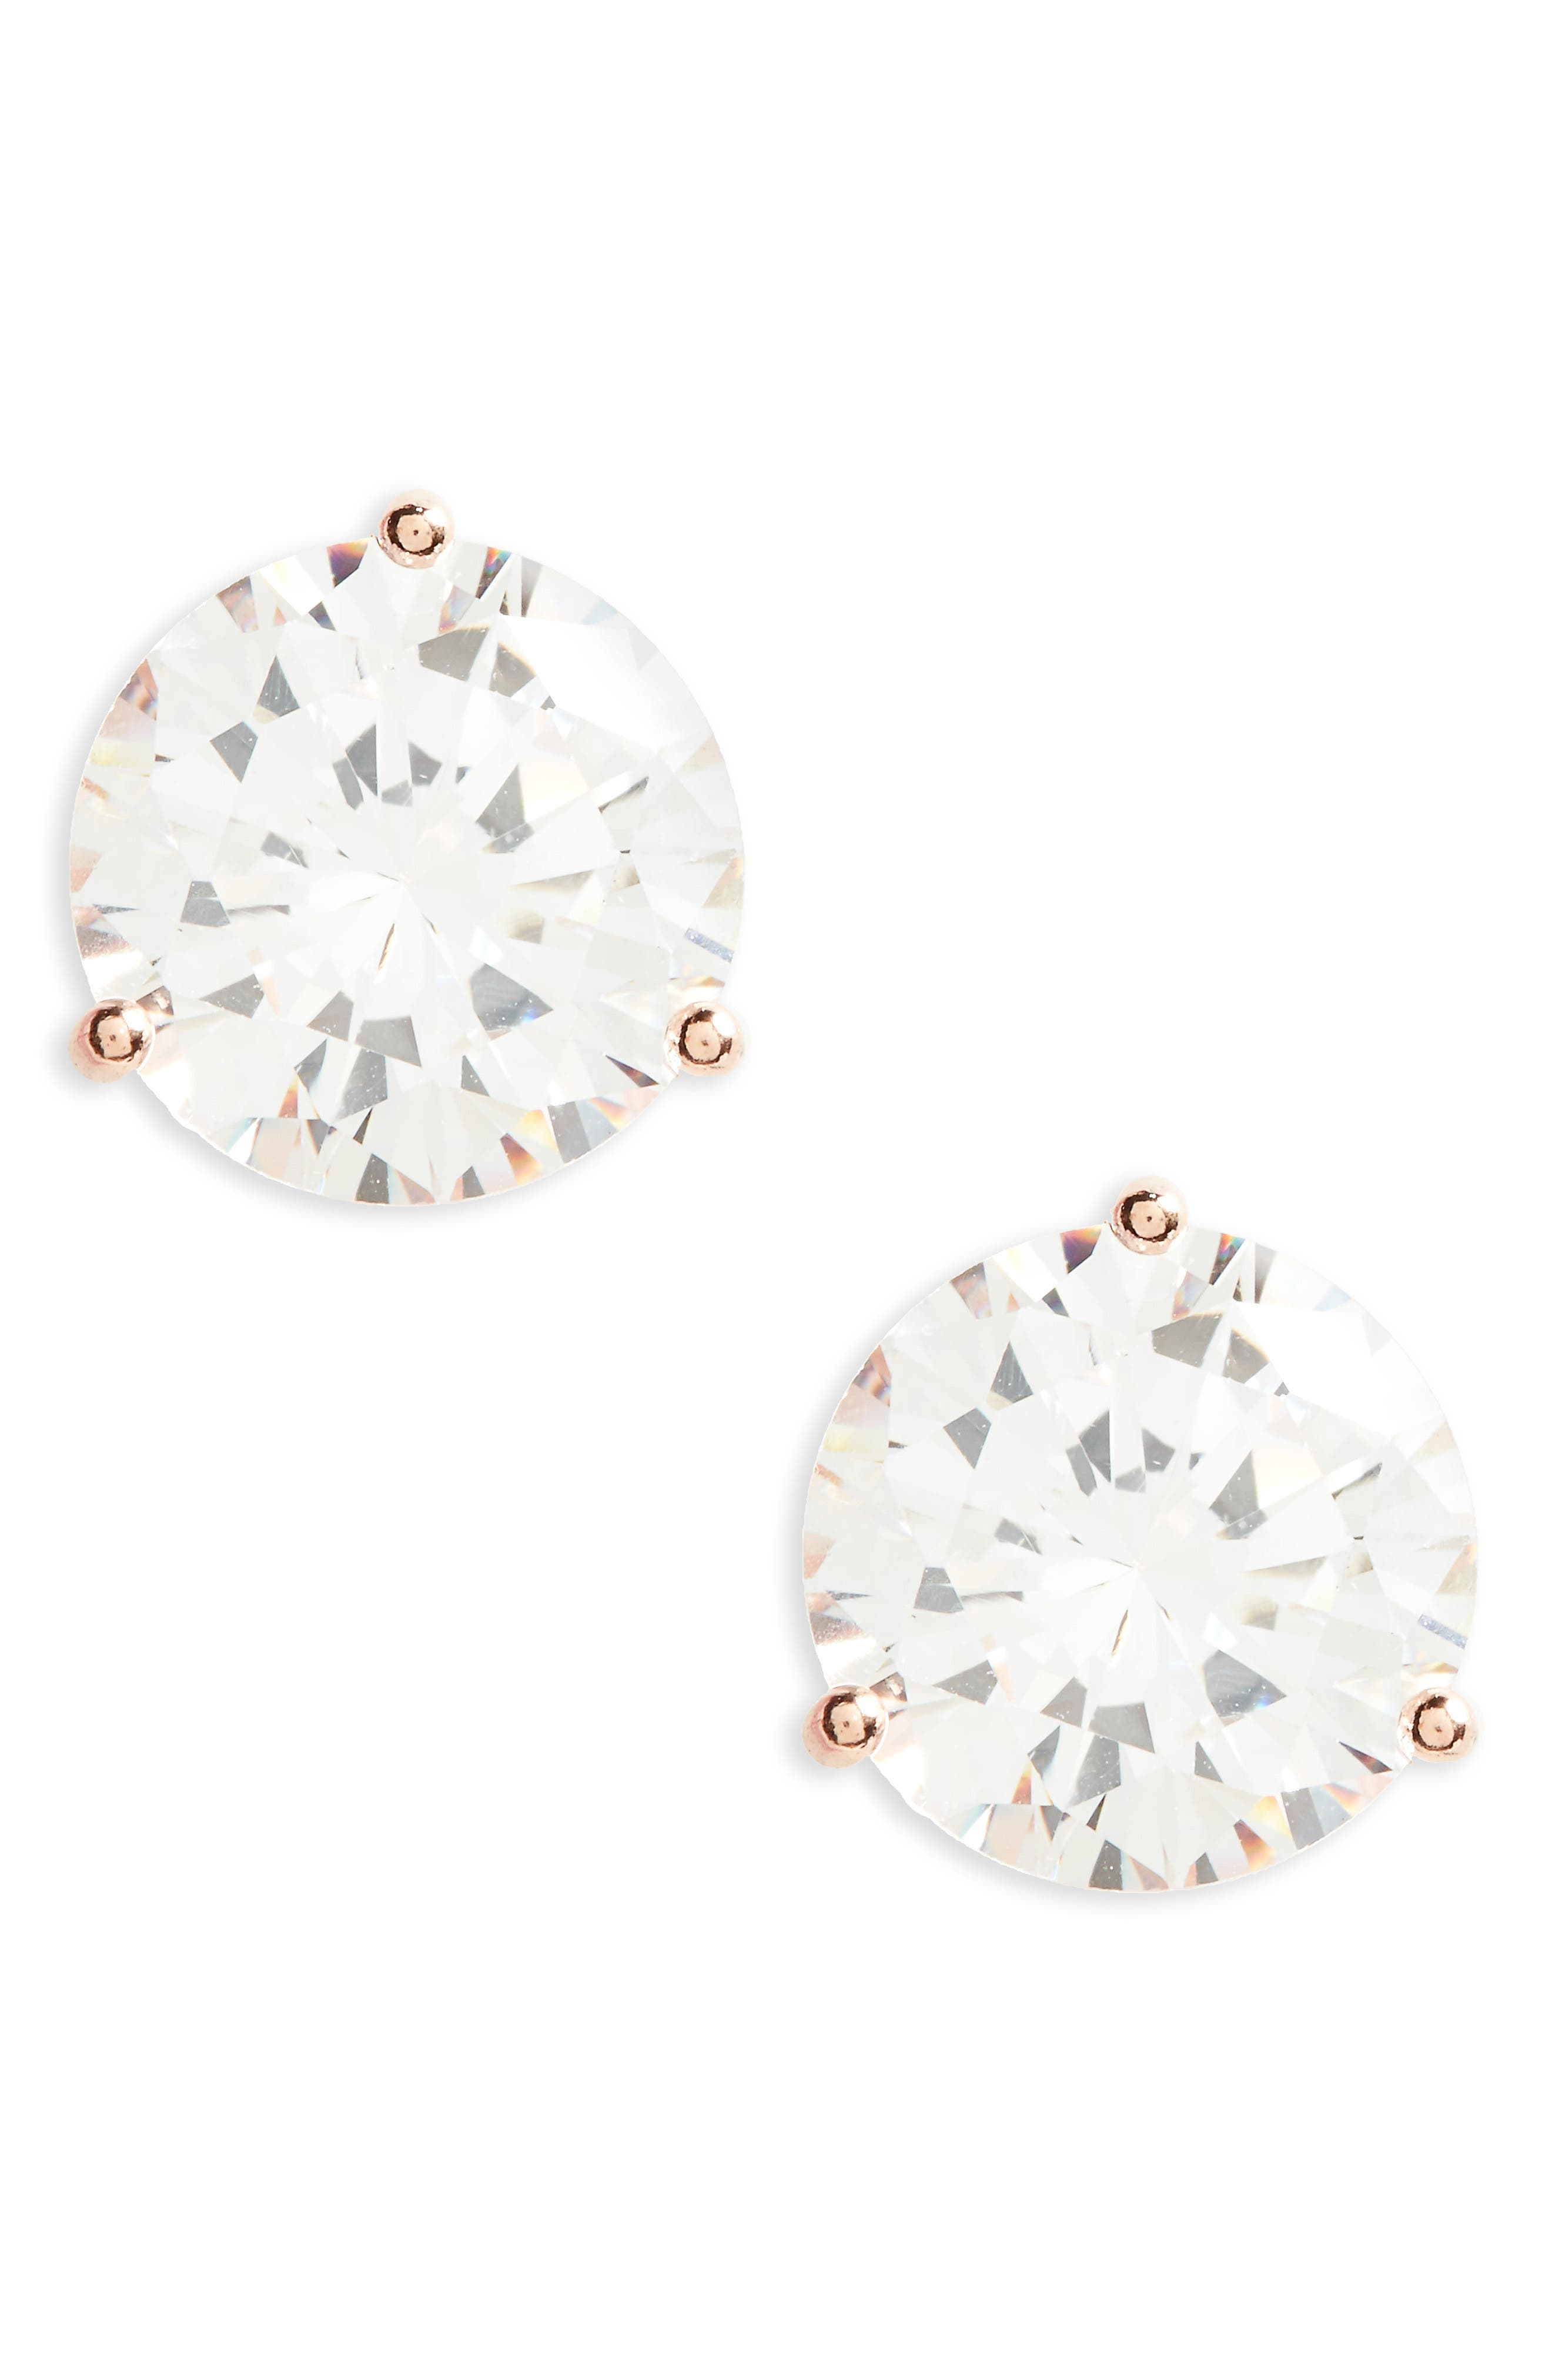 Alternate Image 1 Selected - Nordstrom 8ct tw Cubic Zirconia Stud Earrings